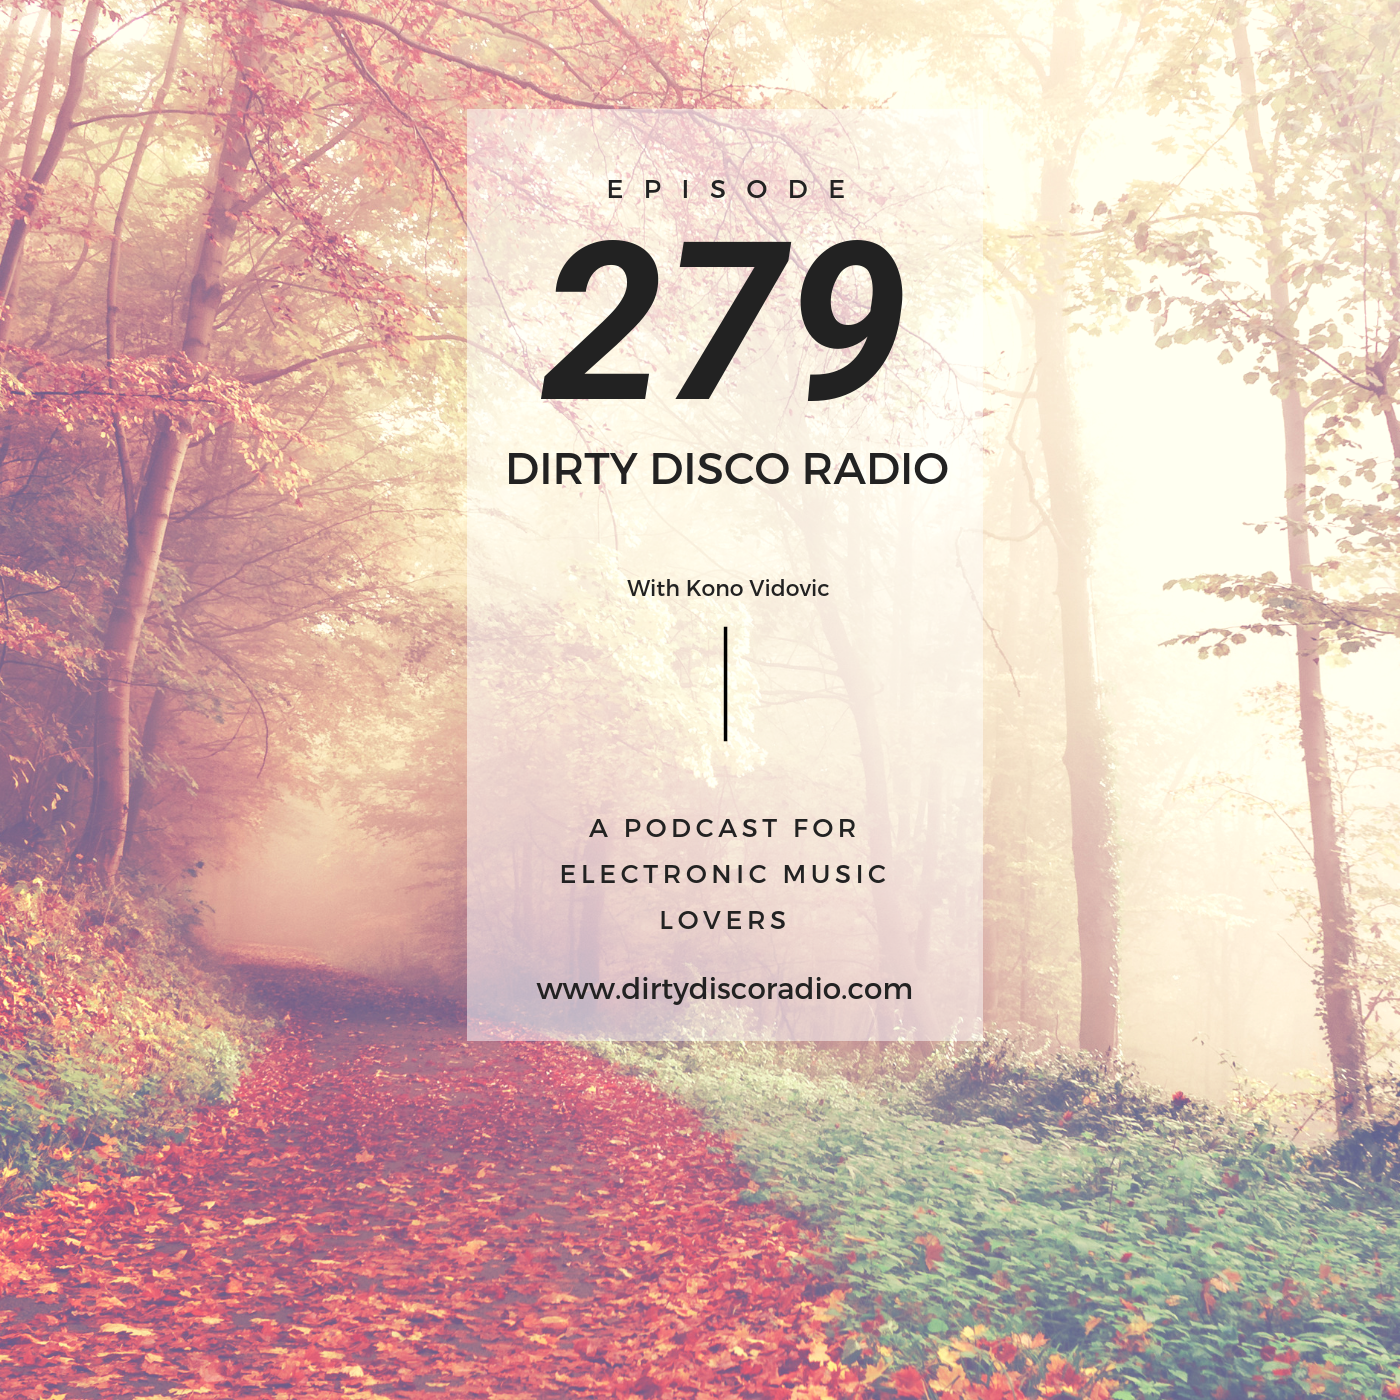 Dirty Disco 279